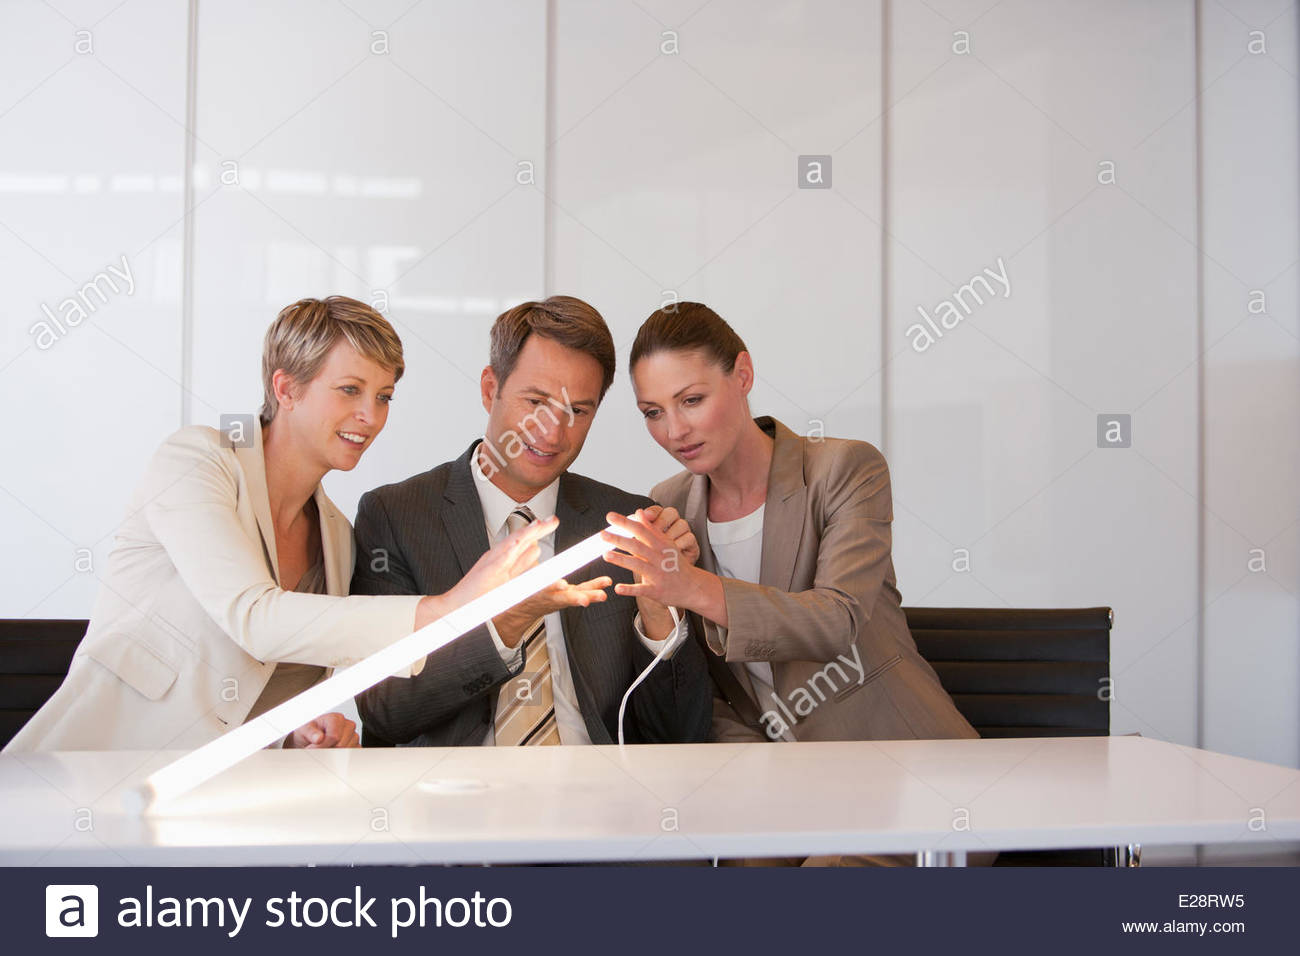 Business people looking at glowing light - Stock Image